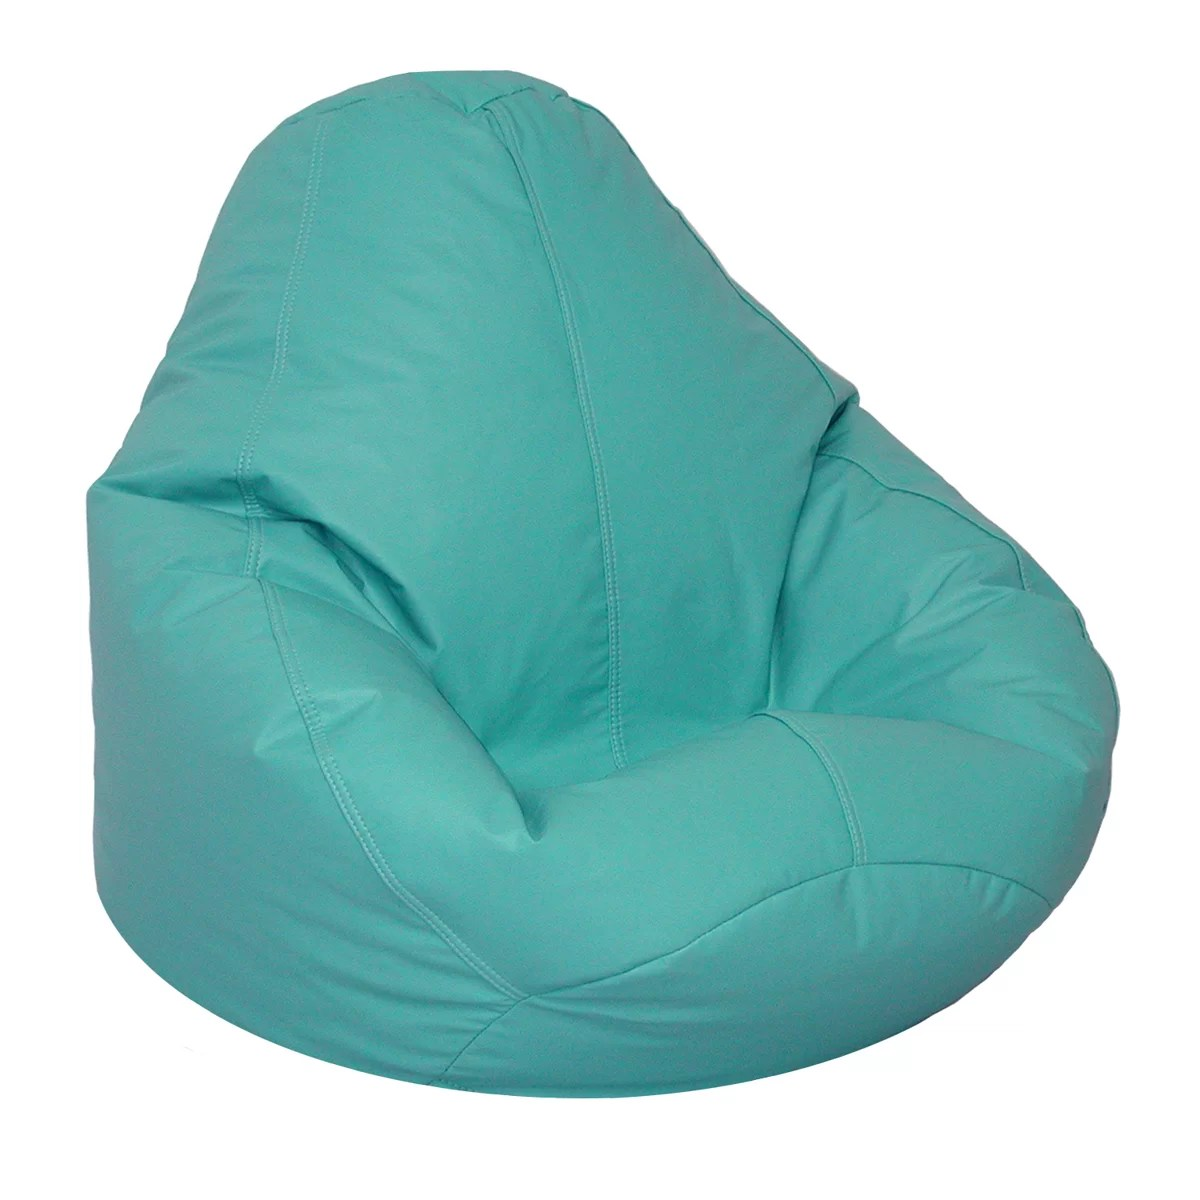 Beanbag Chairs Elite Products Lifestyle Bean Bag Lounger And Reviews Wayfair